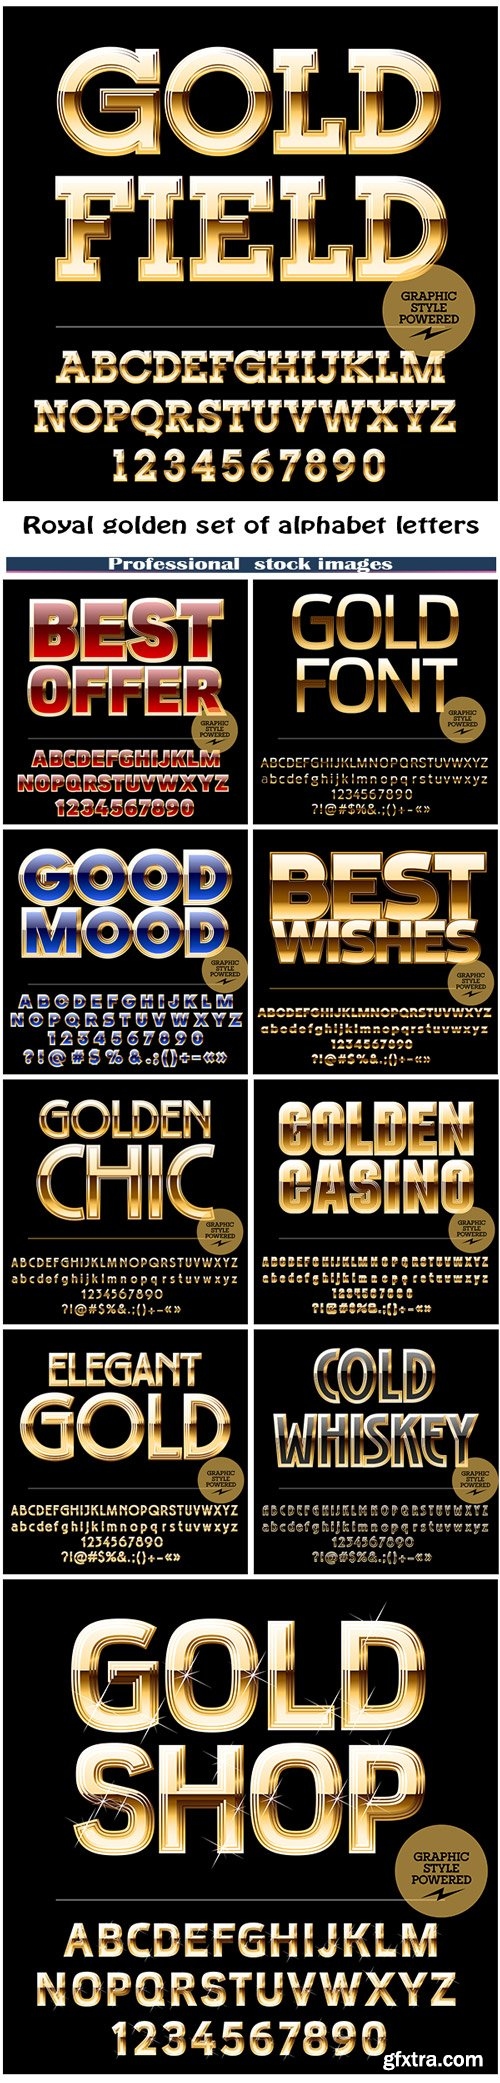 Royal golden set of alphabet letters, numbers and punctuation symbols